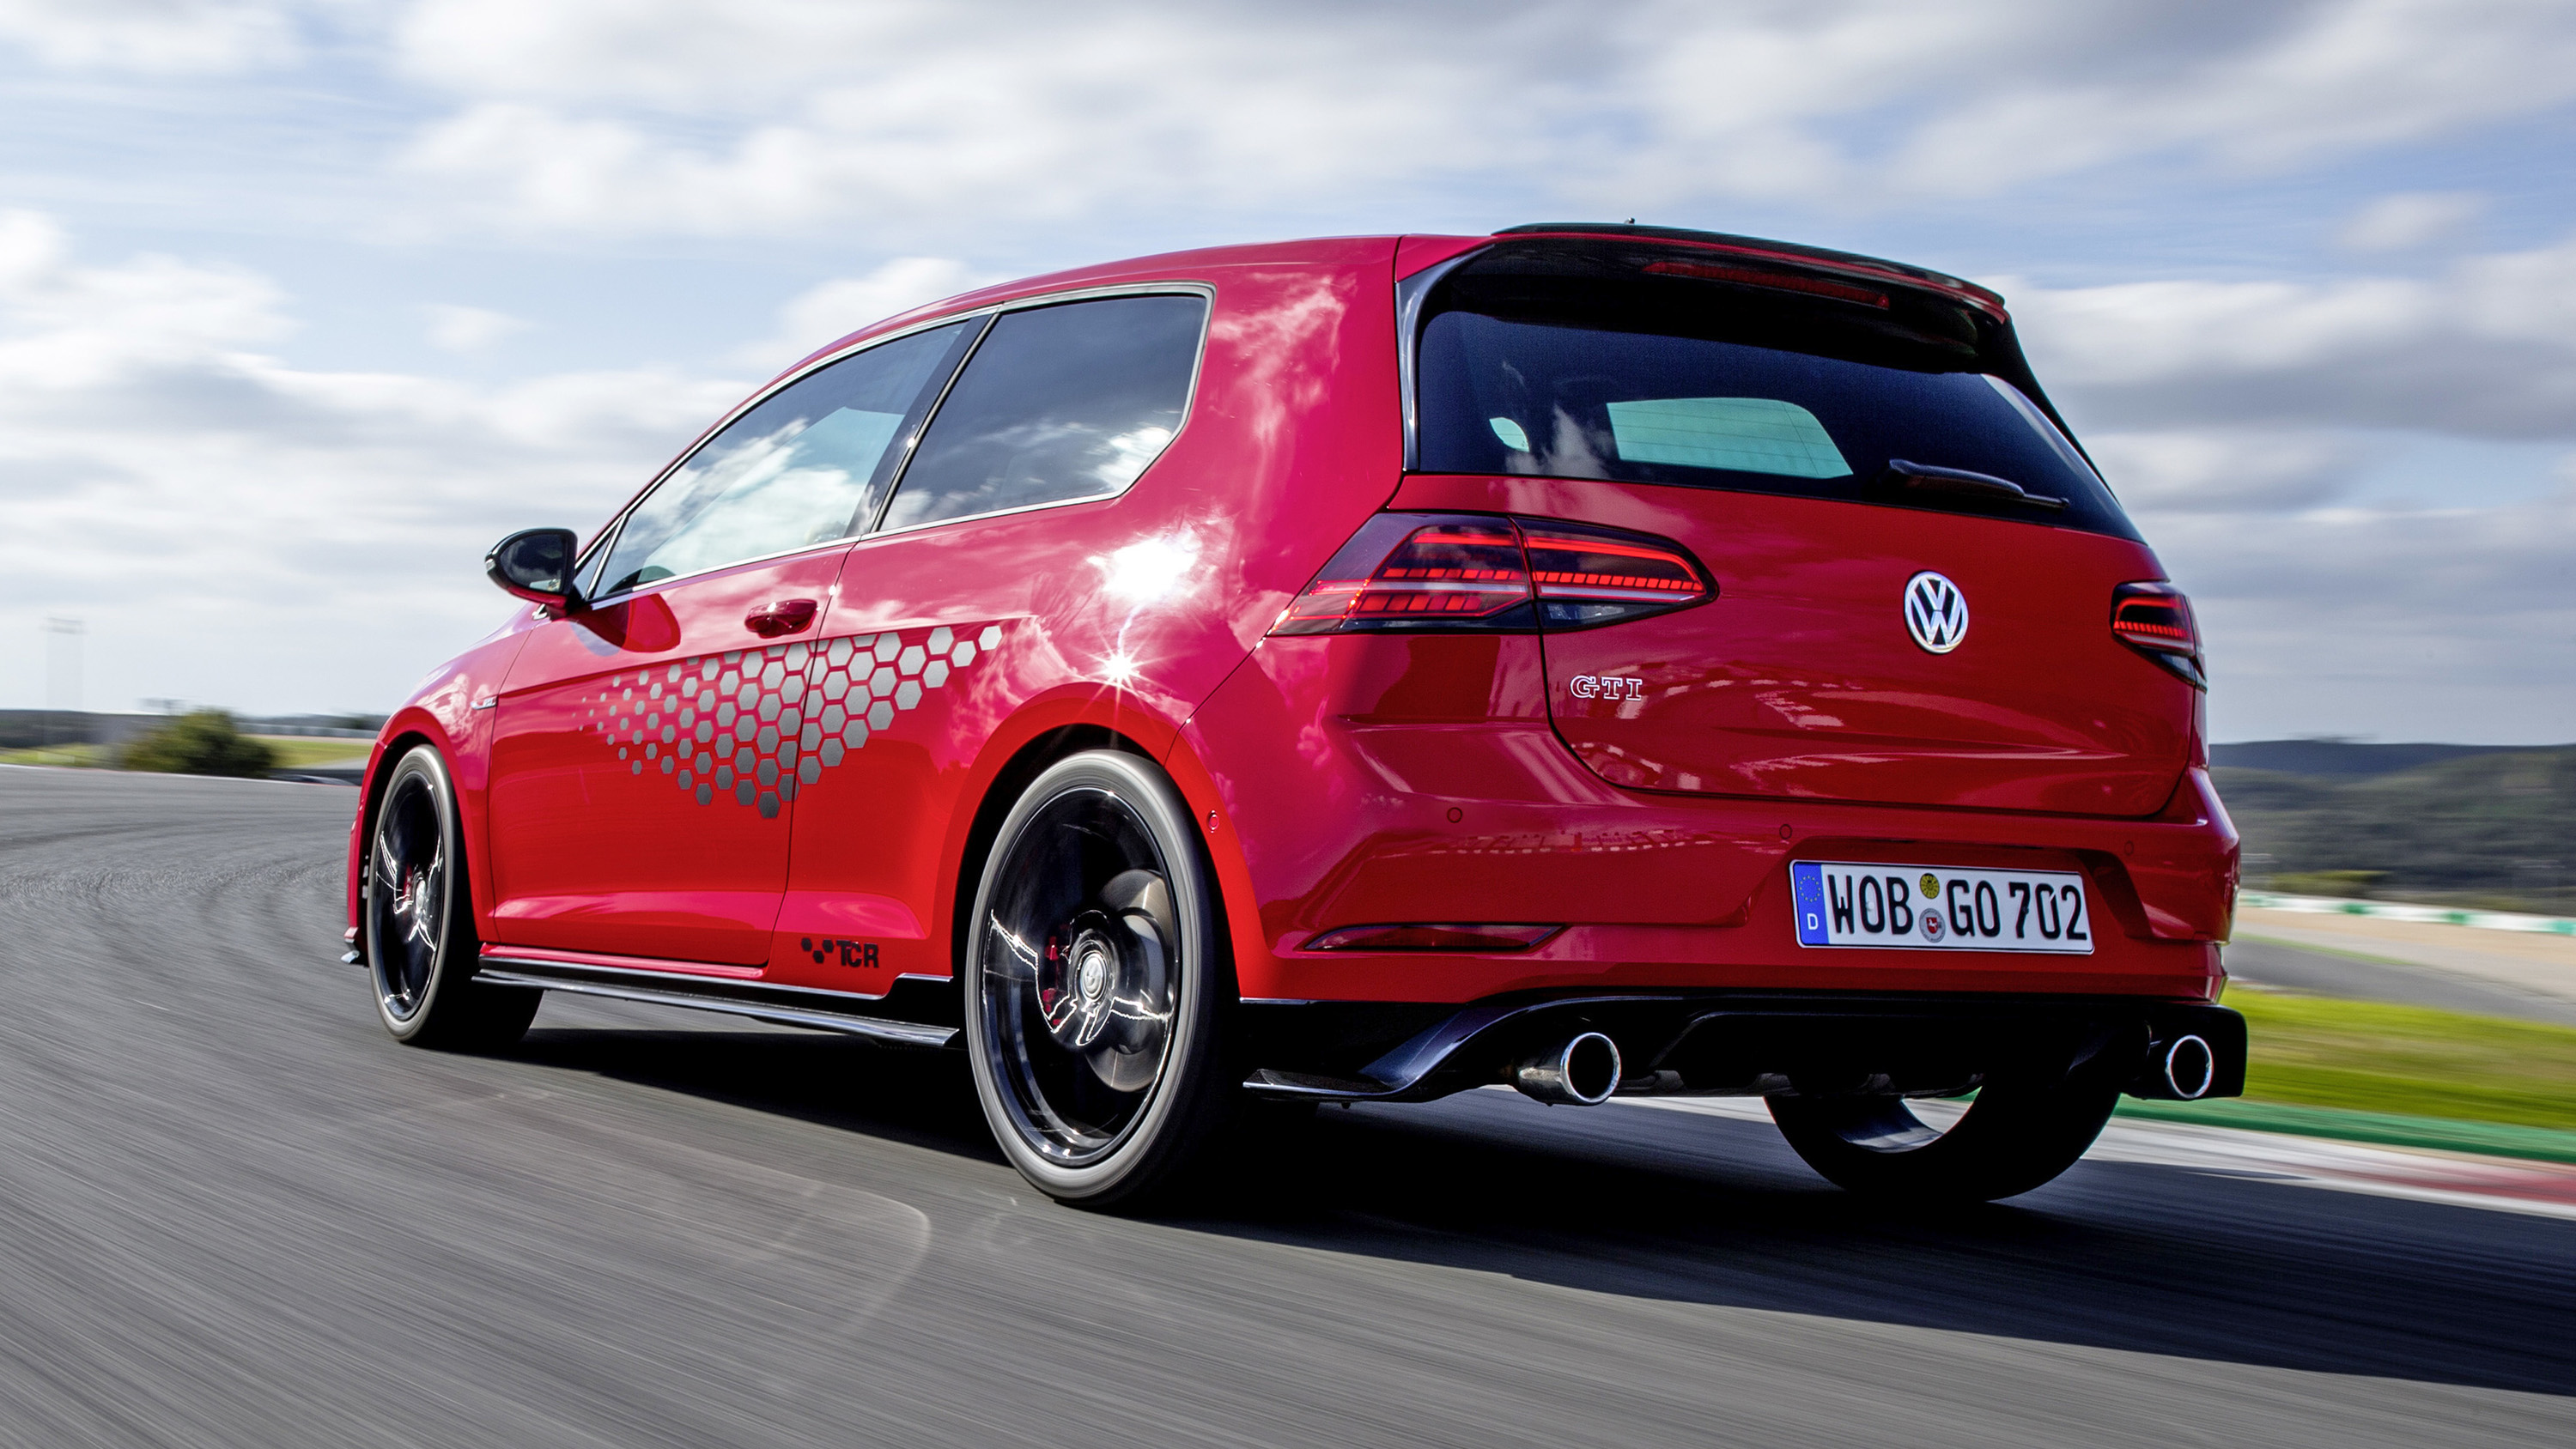 Vw Golf Gti Tcr Review Harder Edged Hot Hatch Driven Top Gear